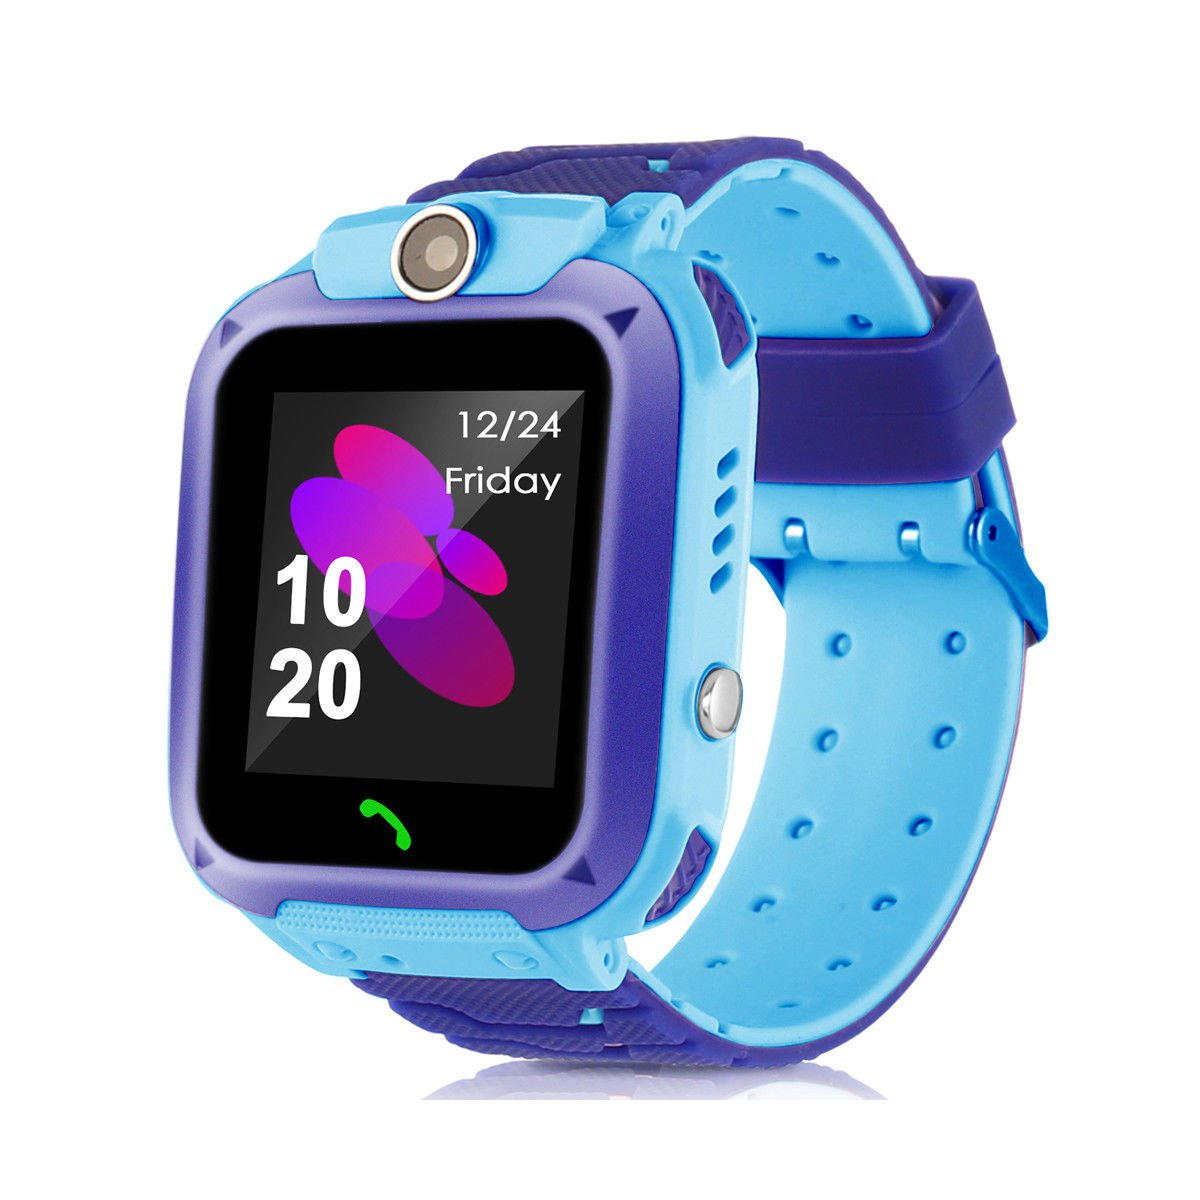 Kids Waterproof GPS Tracker Smart Watch for Android or iOS (Blue)